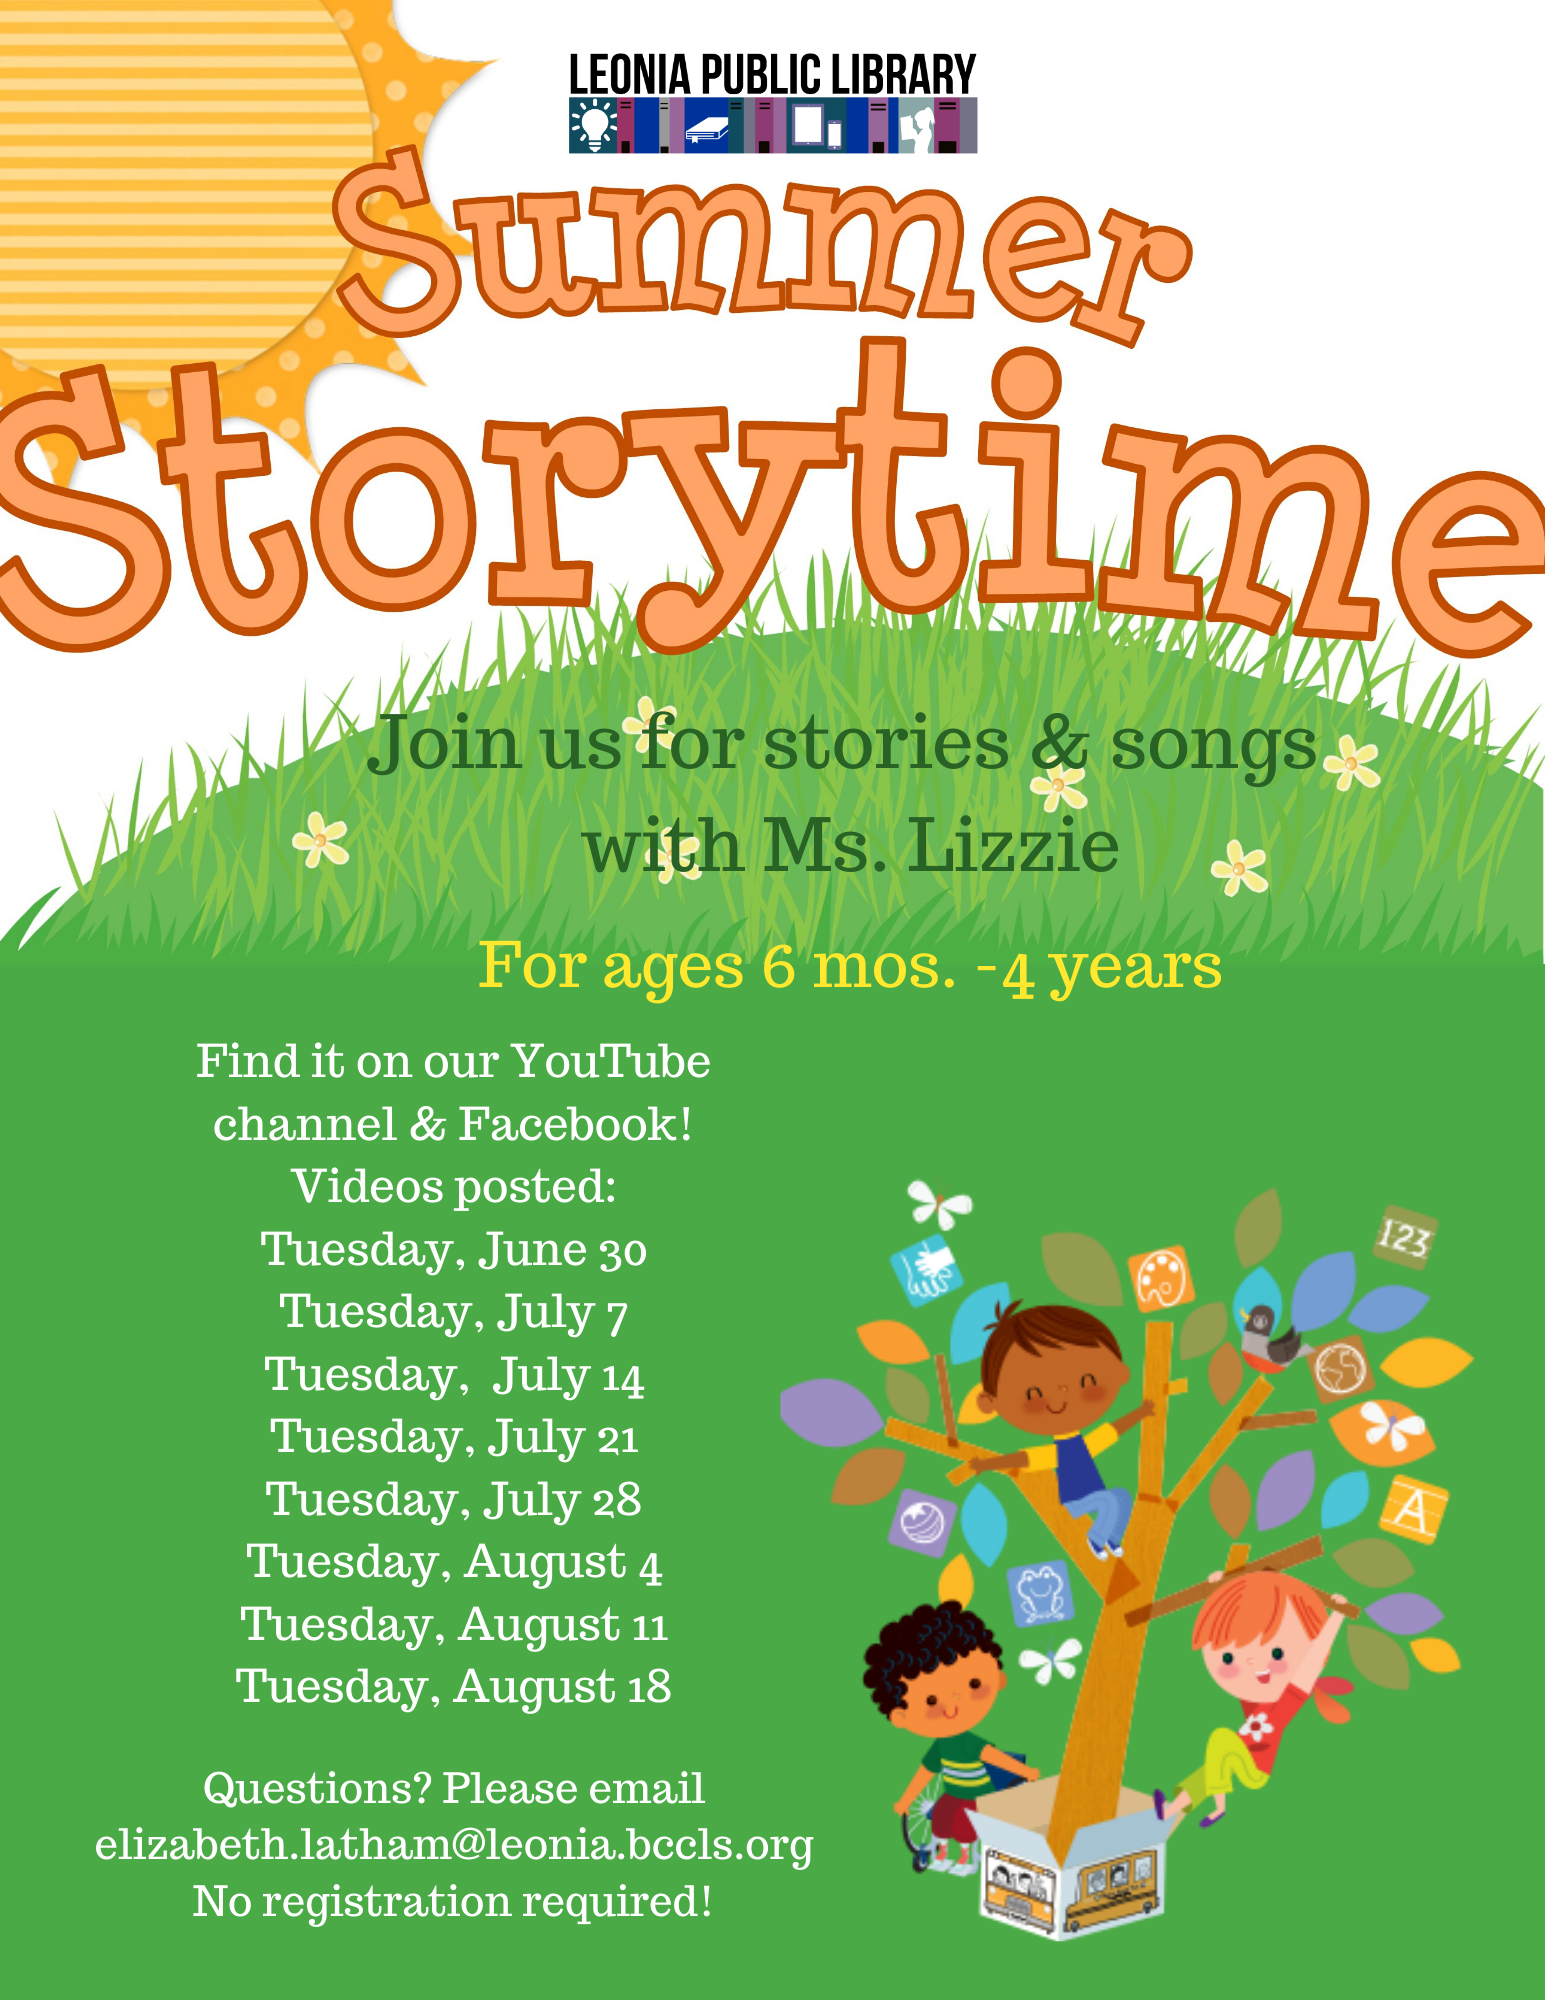 Virtual Summer Stories with Ms. Lizzie